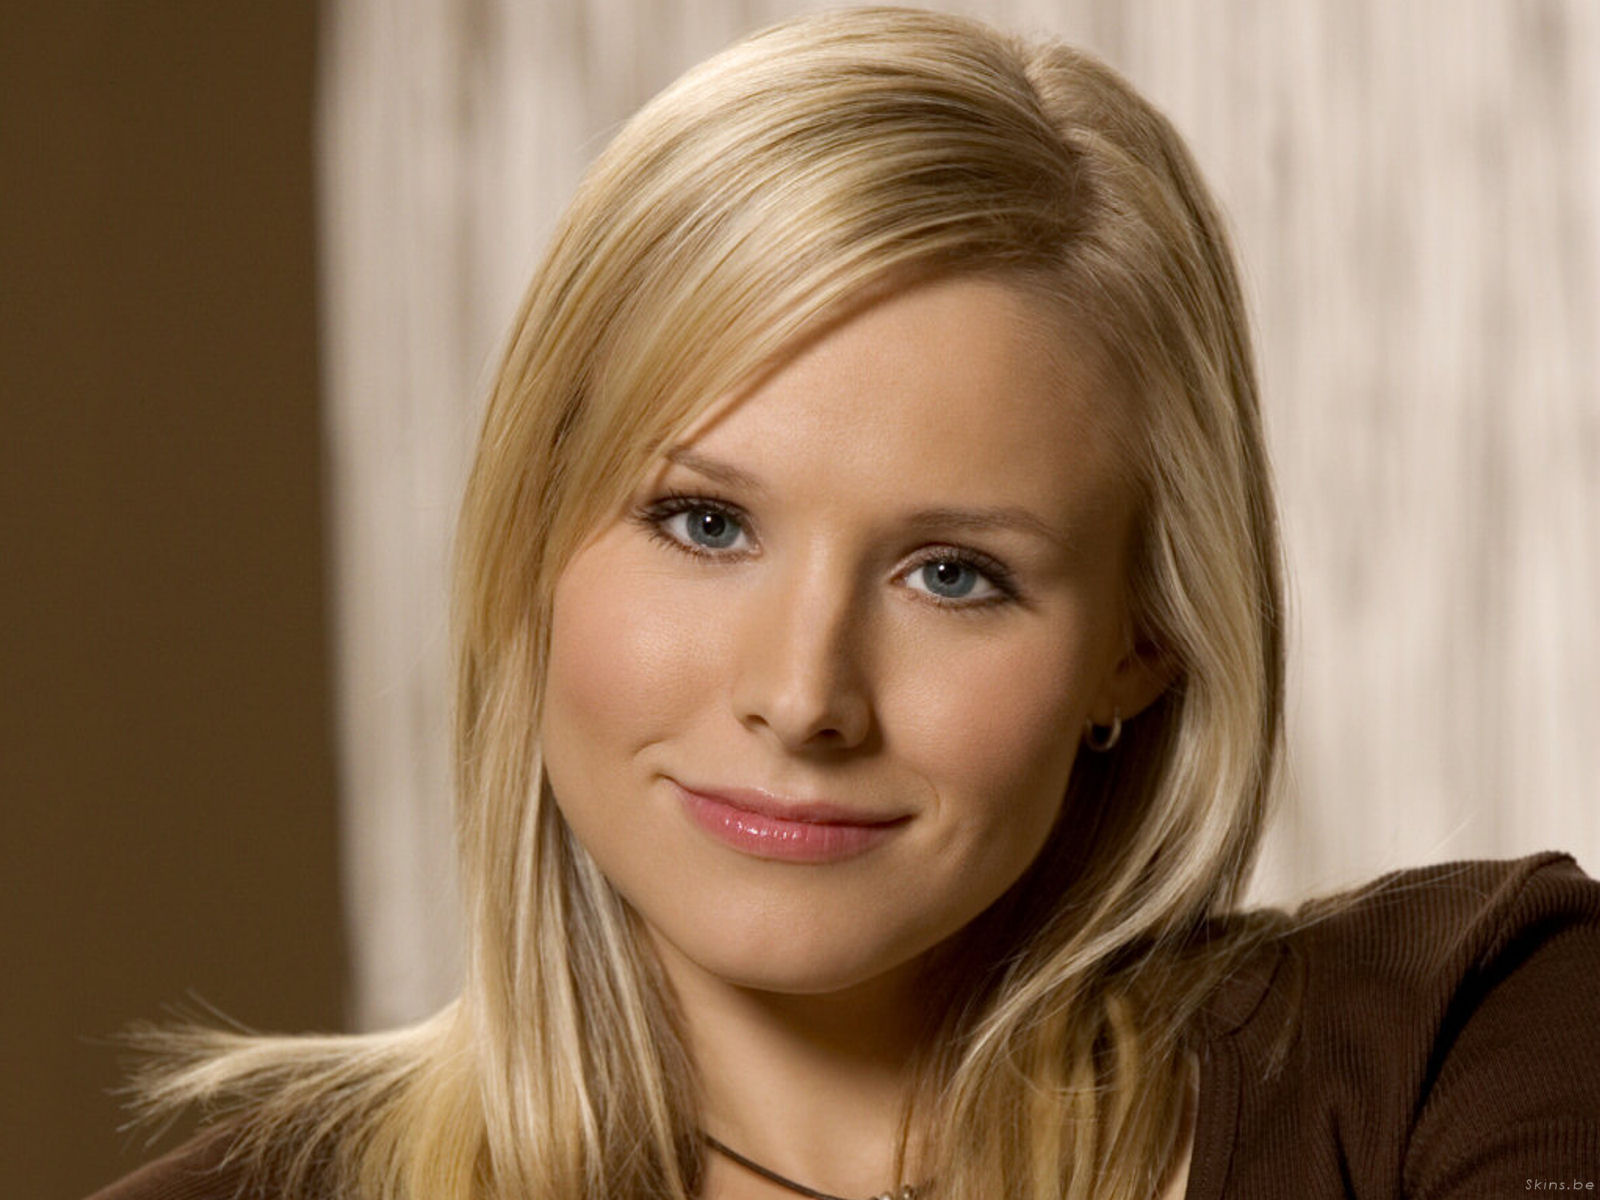 It was reported this week that VERONICA MARS star, Kristen Bell, has signed up to the Melissa McCarthy led film MICHELLE DARNELL.